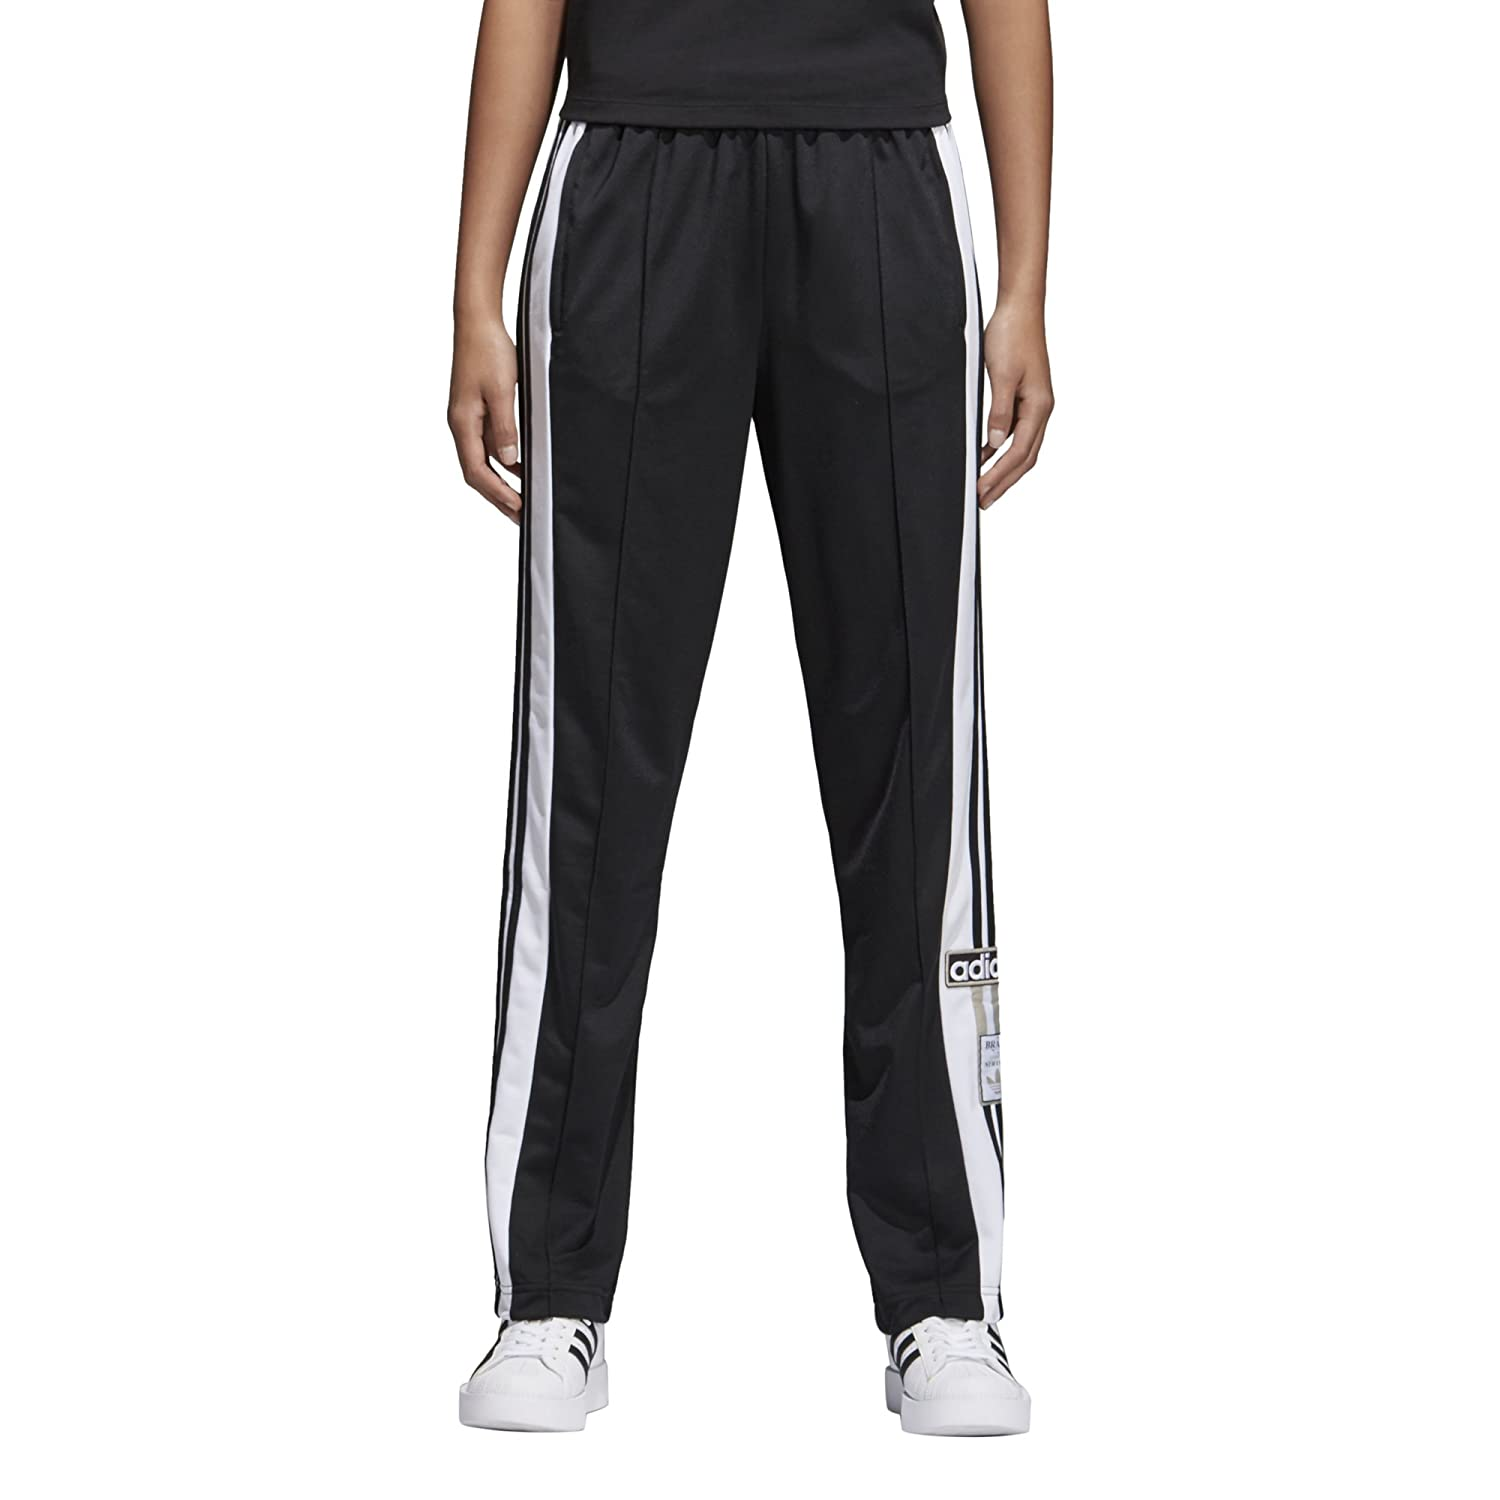 Adidas Originals Women's Adibreak Pants by Adidas+Originals